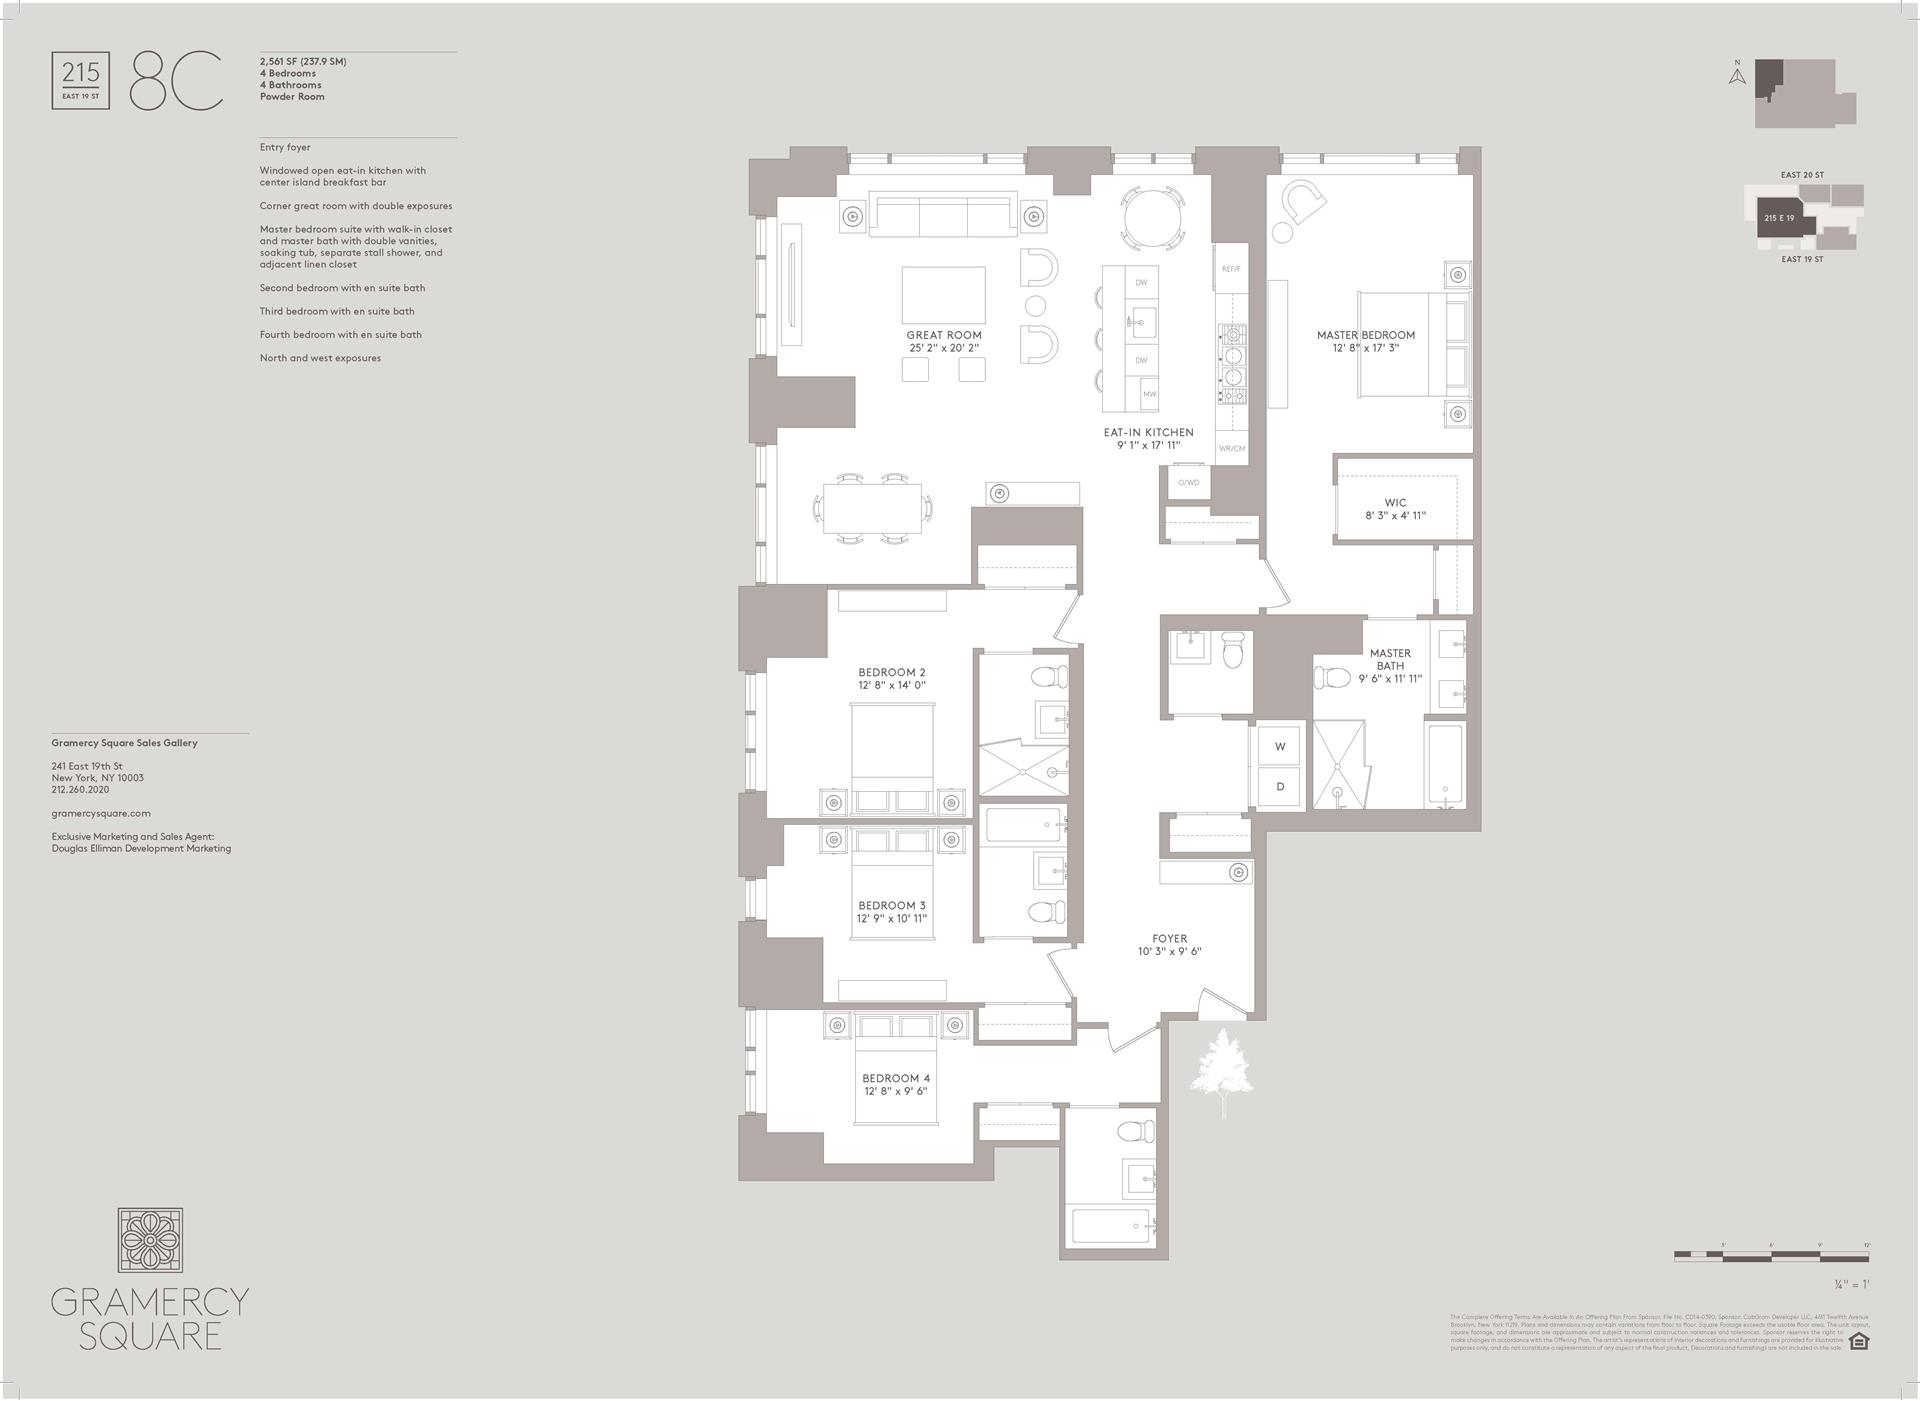 Floor plan of Gramercy Square, 215 East 19th St, 8C - Gramercy - Union Square, New York